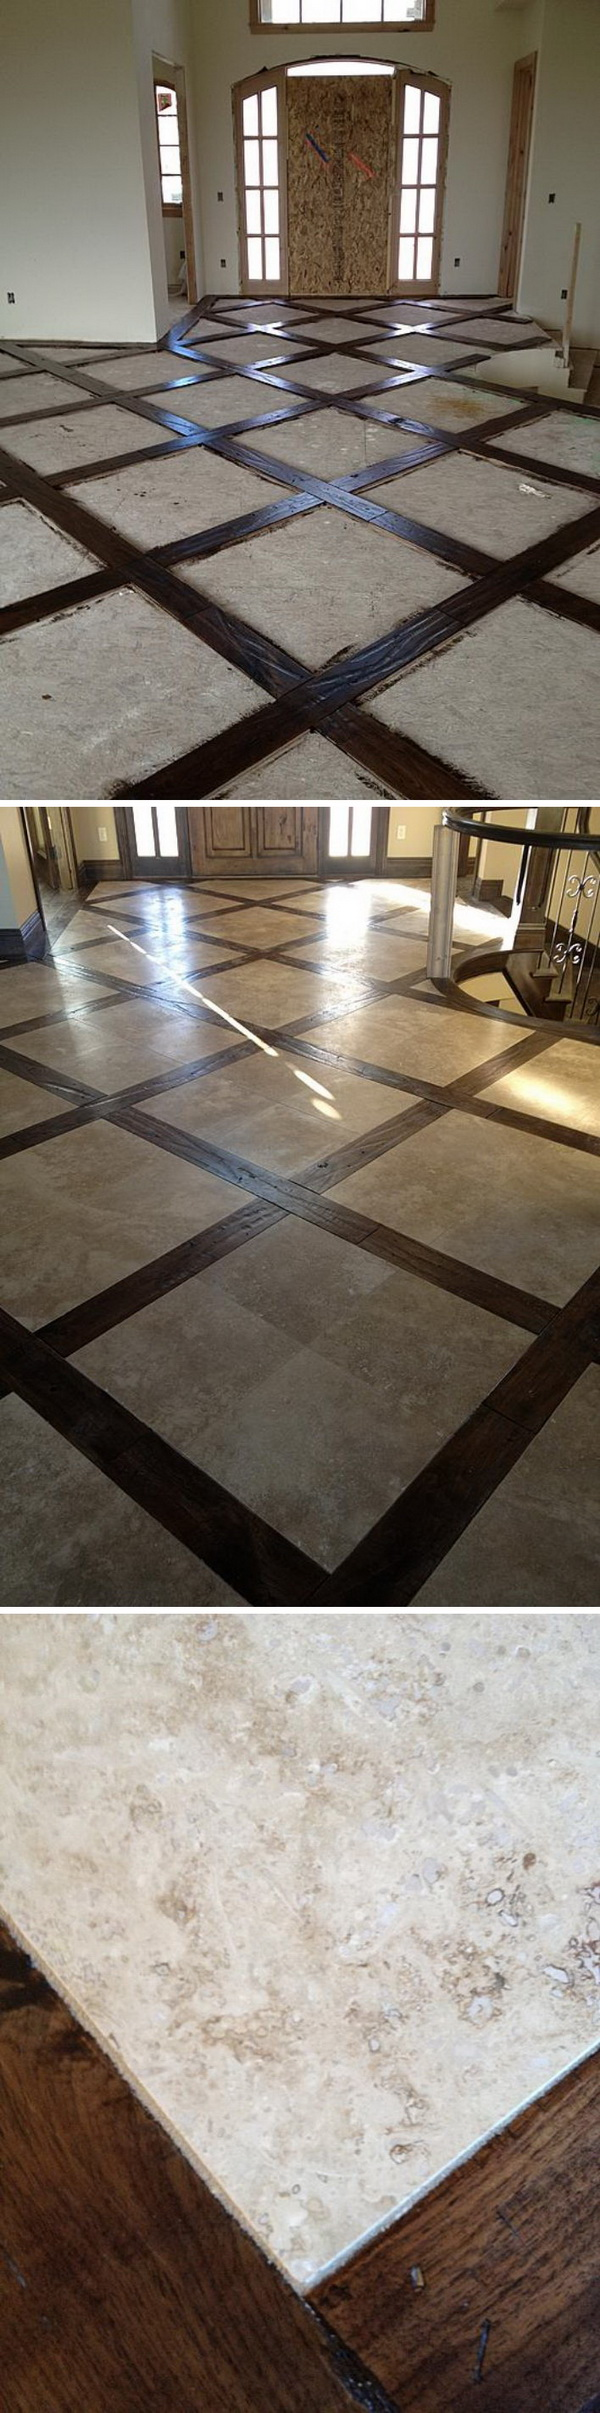 Wood And Tile Basket Weave Floor.